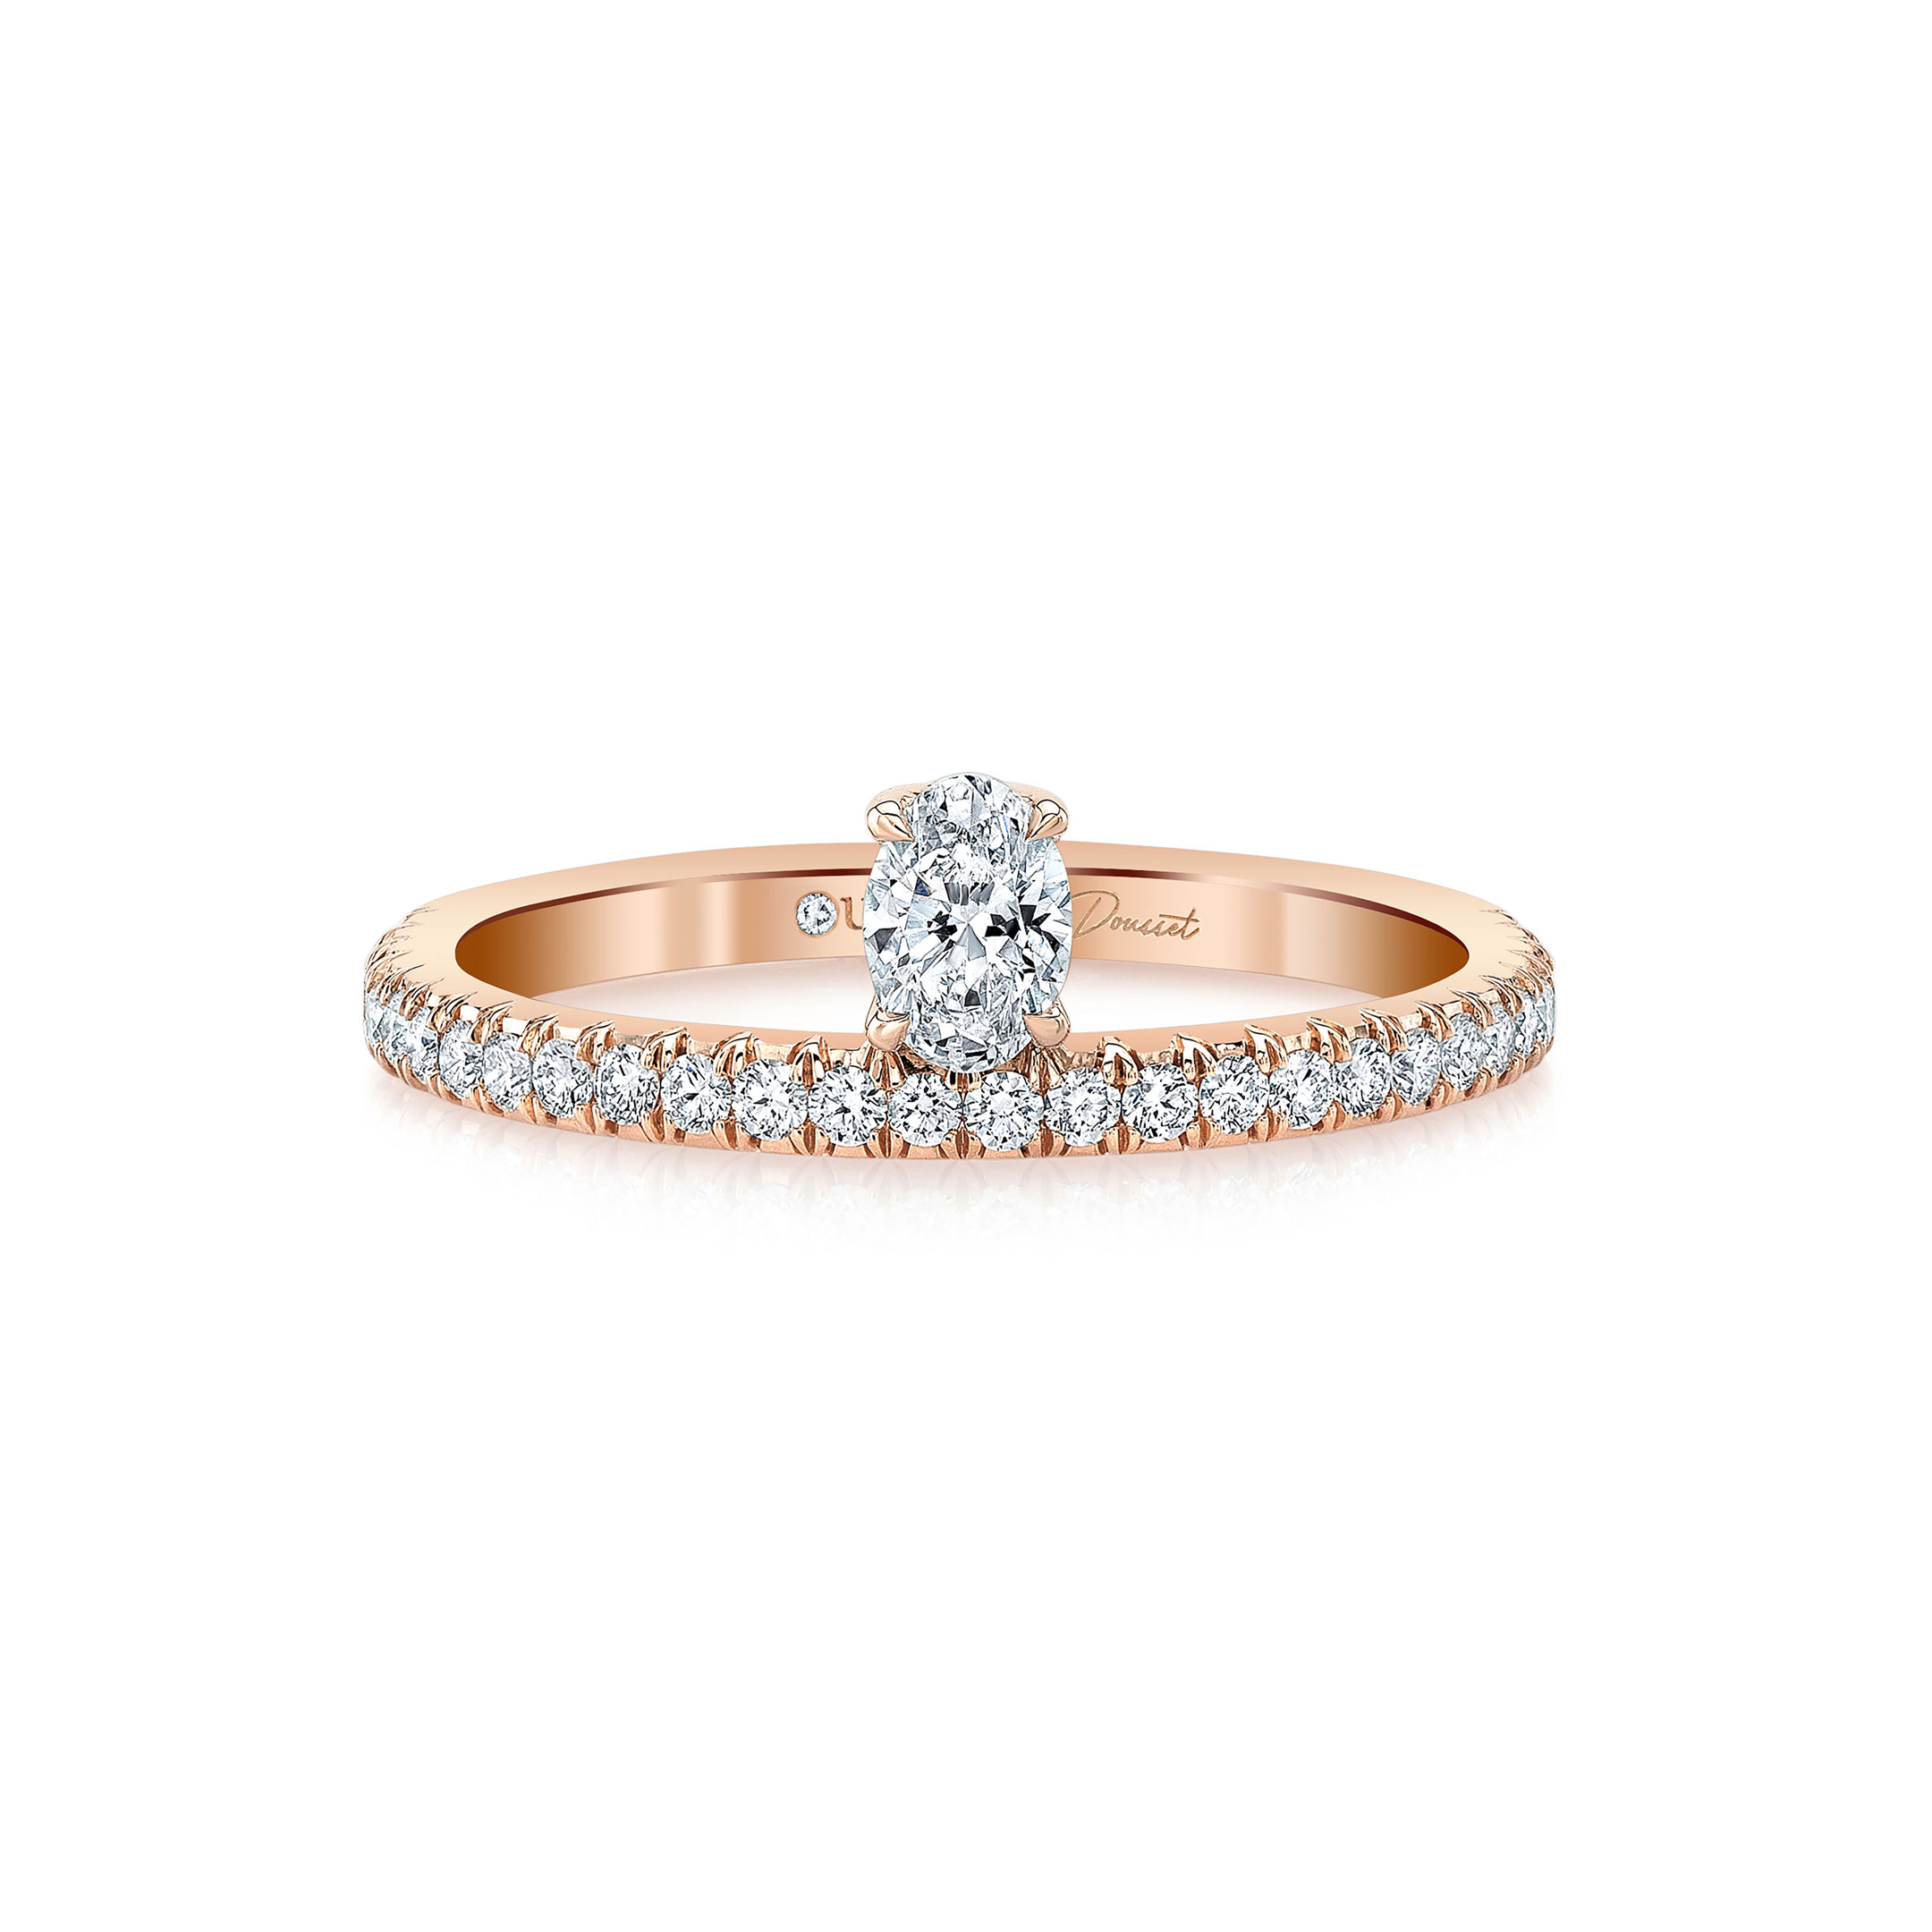 Eloise Floating Oval Diamond Ring in 18k Rose Gold Front View by Oui by Jean Dousset